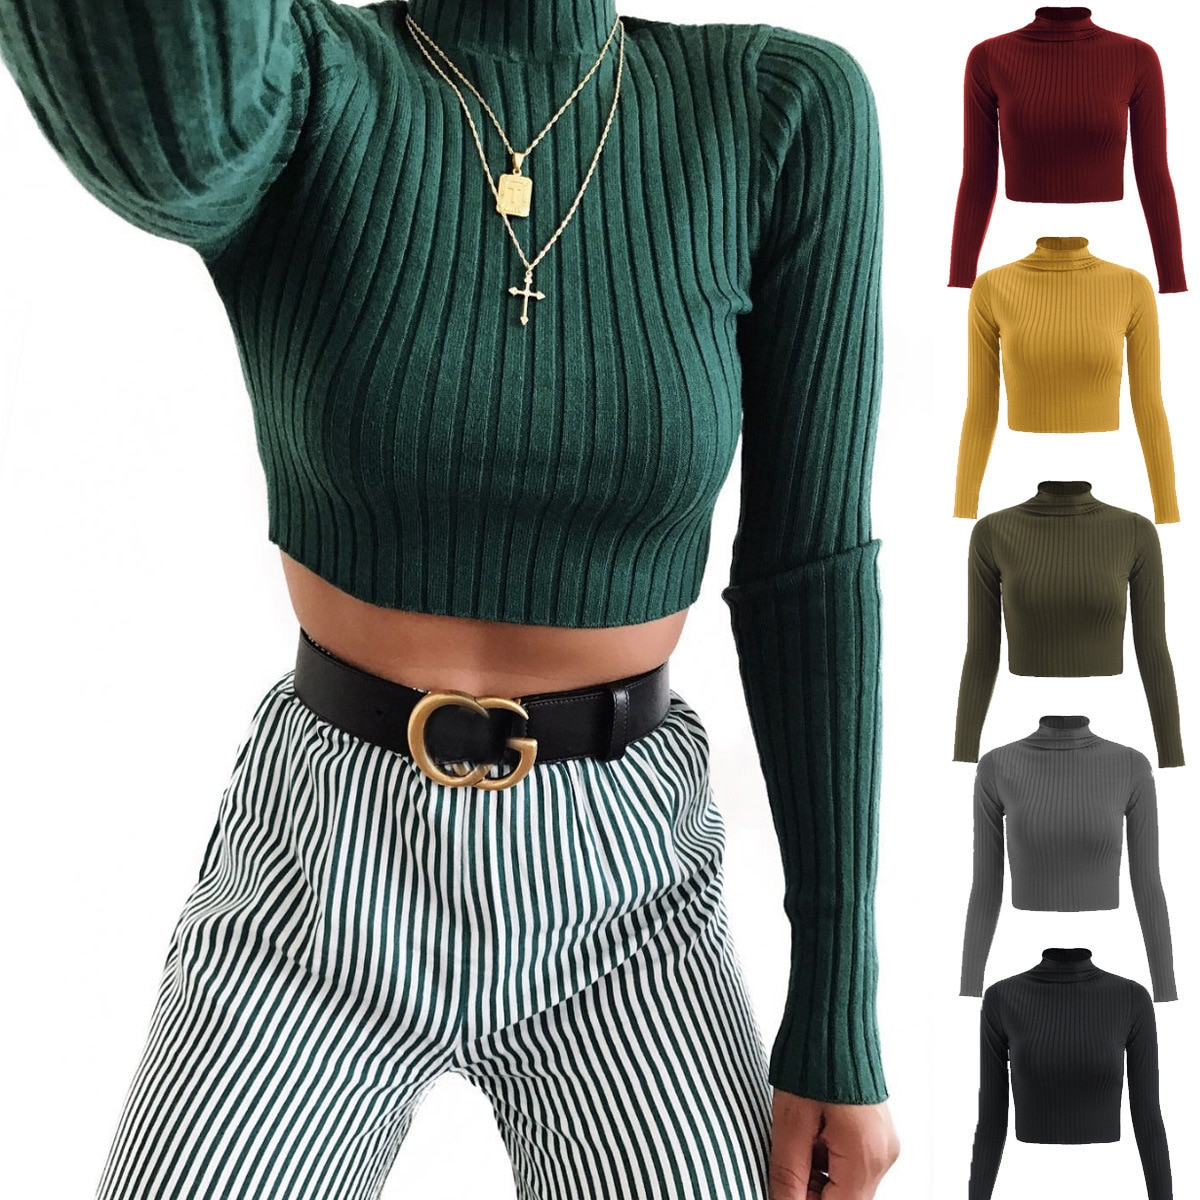 Sexy Navel Women Knitted Solid Crop Tops 2021 Fashion Turtleneck Knit Women Pullovers Short Top Shirts Tees Blouses Tops недорого